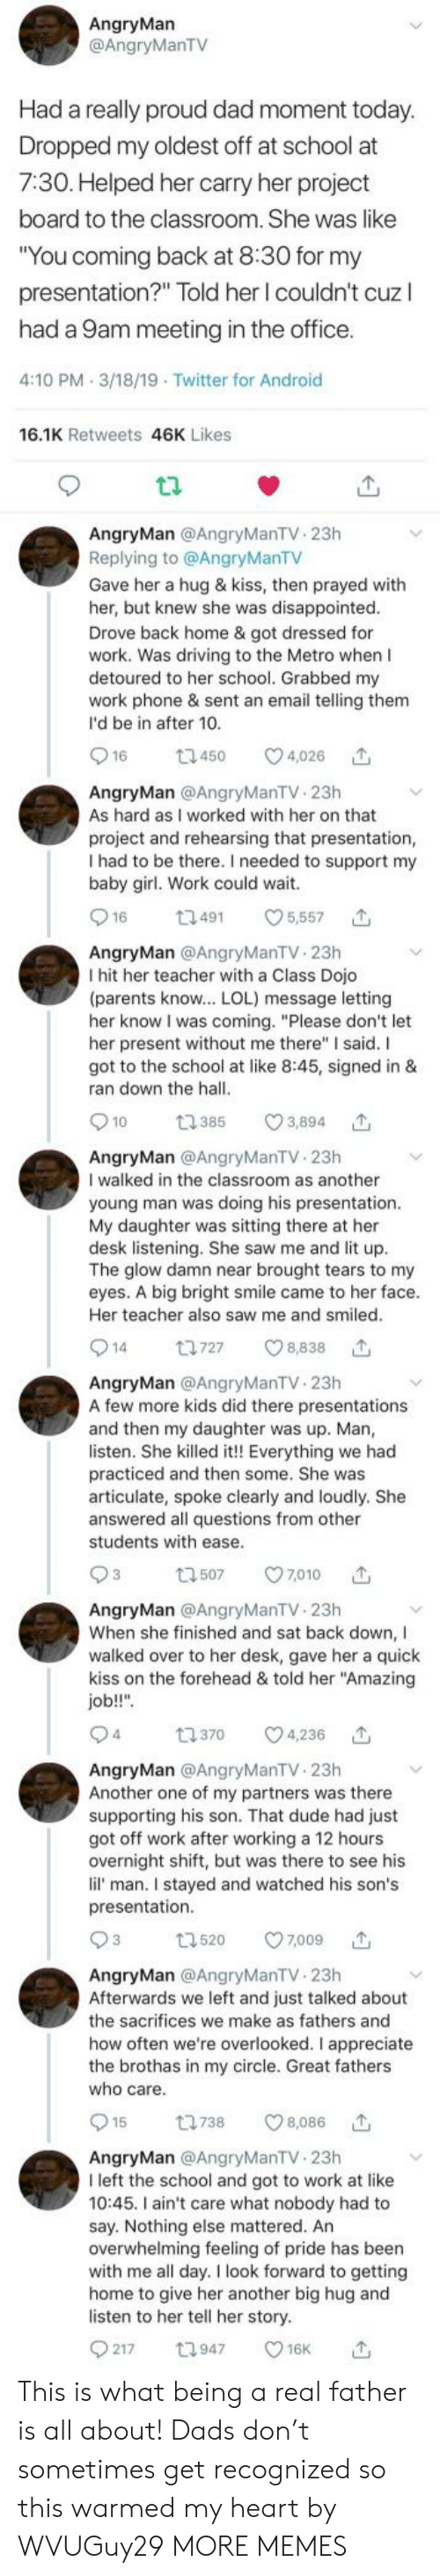 """Android, Another One, and Dad: AngryMarn  @AngryManTV  Had a really proud dad moment today  Dropped my oldest off at school at  7:30. Helped her carry her project  board to the classroom. She was like  You coming back at 8.3O for my  presentation?"""" Told her l couldn't cuz l  had a 9am meeting in the office  4:10 PM 3/18/19 Twitter for Android  16.1K Retweets 46K Likes  AngryMan @AngryManTV. 23h  Replying to @AngryManTV  Gave her a hug & kiss, then prayed with  her, but knew she was disappointed  Drove back home & got dressed for  work. Was driving to the Metro when I  detoured to her school. Grabbed my  work phone & sent an email telling them  I'd be in after 10.  16  450  4,026  AngryMan @AngryManTV 23h  As hard as I worked with her on that  project and rehearsing that presentation  I had to be there. I needed to support my  baby girl. Work could wait.  916 t49 5,557  AngryMan @AngryManTV 23h  I hit her teacher with a Class Dojo  (parents know.. LOL) message letting  her know I was coming. """"Please don't let  her present without me there"""" I said. I  got to the school at like 8:45, signed in &  ran down the hall  t2385  3,894  AngryMan @AngryManTV 23h  I walked in the classroom as another  young man was doing his presentation.  My daughter was sitting there at her  desk listening. She saw me and lit up  The glow damn near brought tears to my  eyes. A big bright smile came to her face  Her teacher also saw me and smiled  14 t727 8,838  AngryMan @AngryManTV 23h  A few more kids did there presentations  and then my daughter was up. Man,  listen. She killed it!! Everything we had  practiced and then some. She was  articulate, spoke clearly and loudly. She  answered all questions from other  students with ease  93 507 7010  AngryMan @AngryManTV 23h  When she finished and sat back down, I  walked over to her desk, gave her a quick  kiss on the forehead & told her """"Amazing  job!!""""  t370  4,236  4  AngryMan @AngryManTV 23h  Another one of my partners was there  supporting hi"""